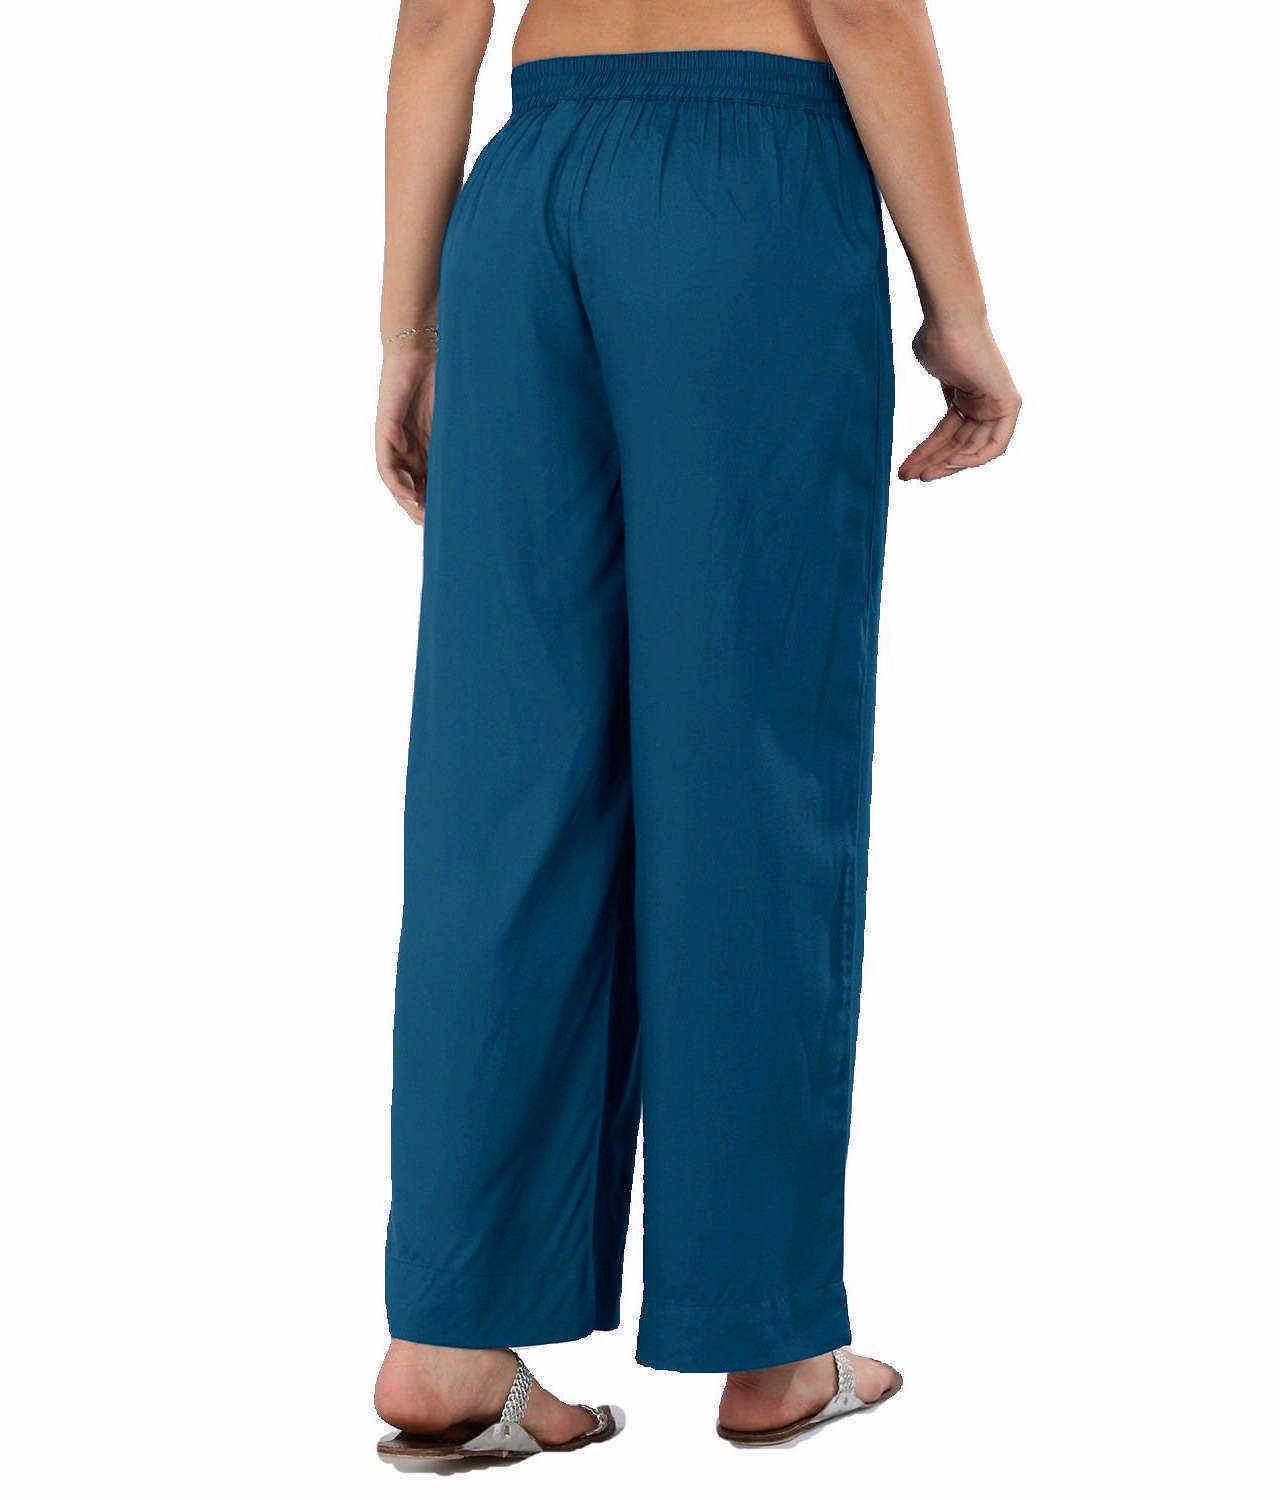 Regular Straight Fit Palazzo Pant in Sky Blue